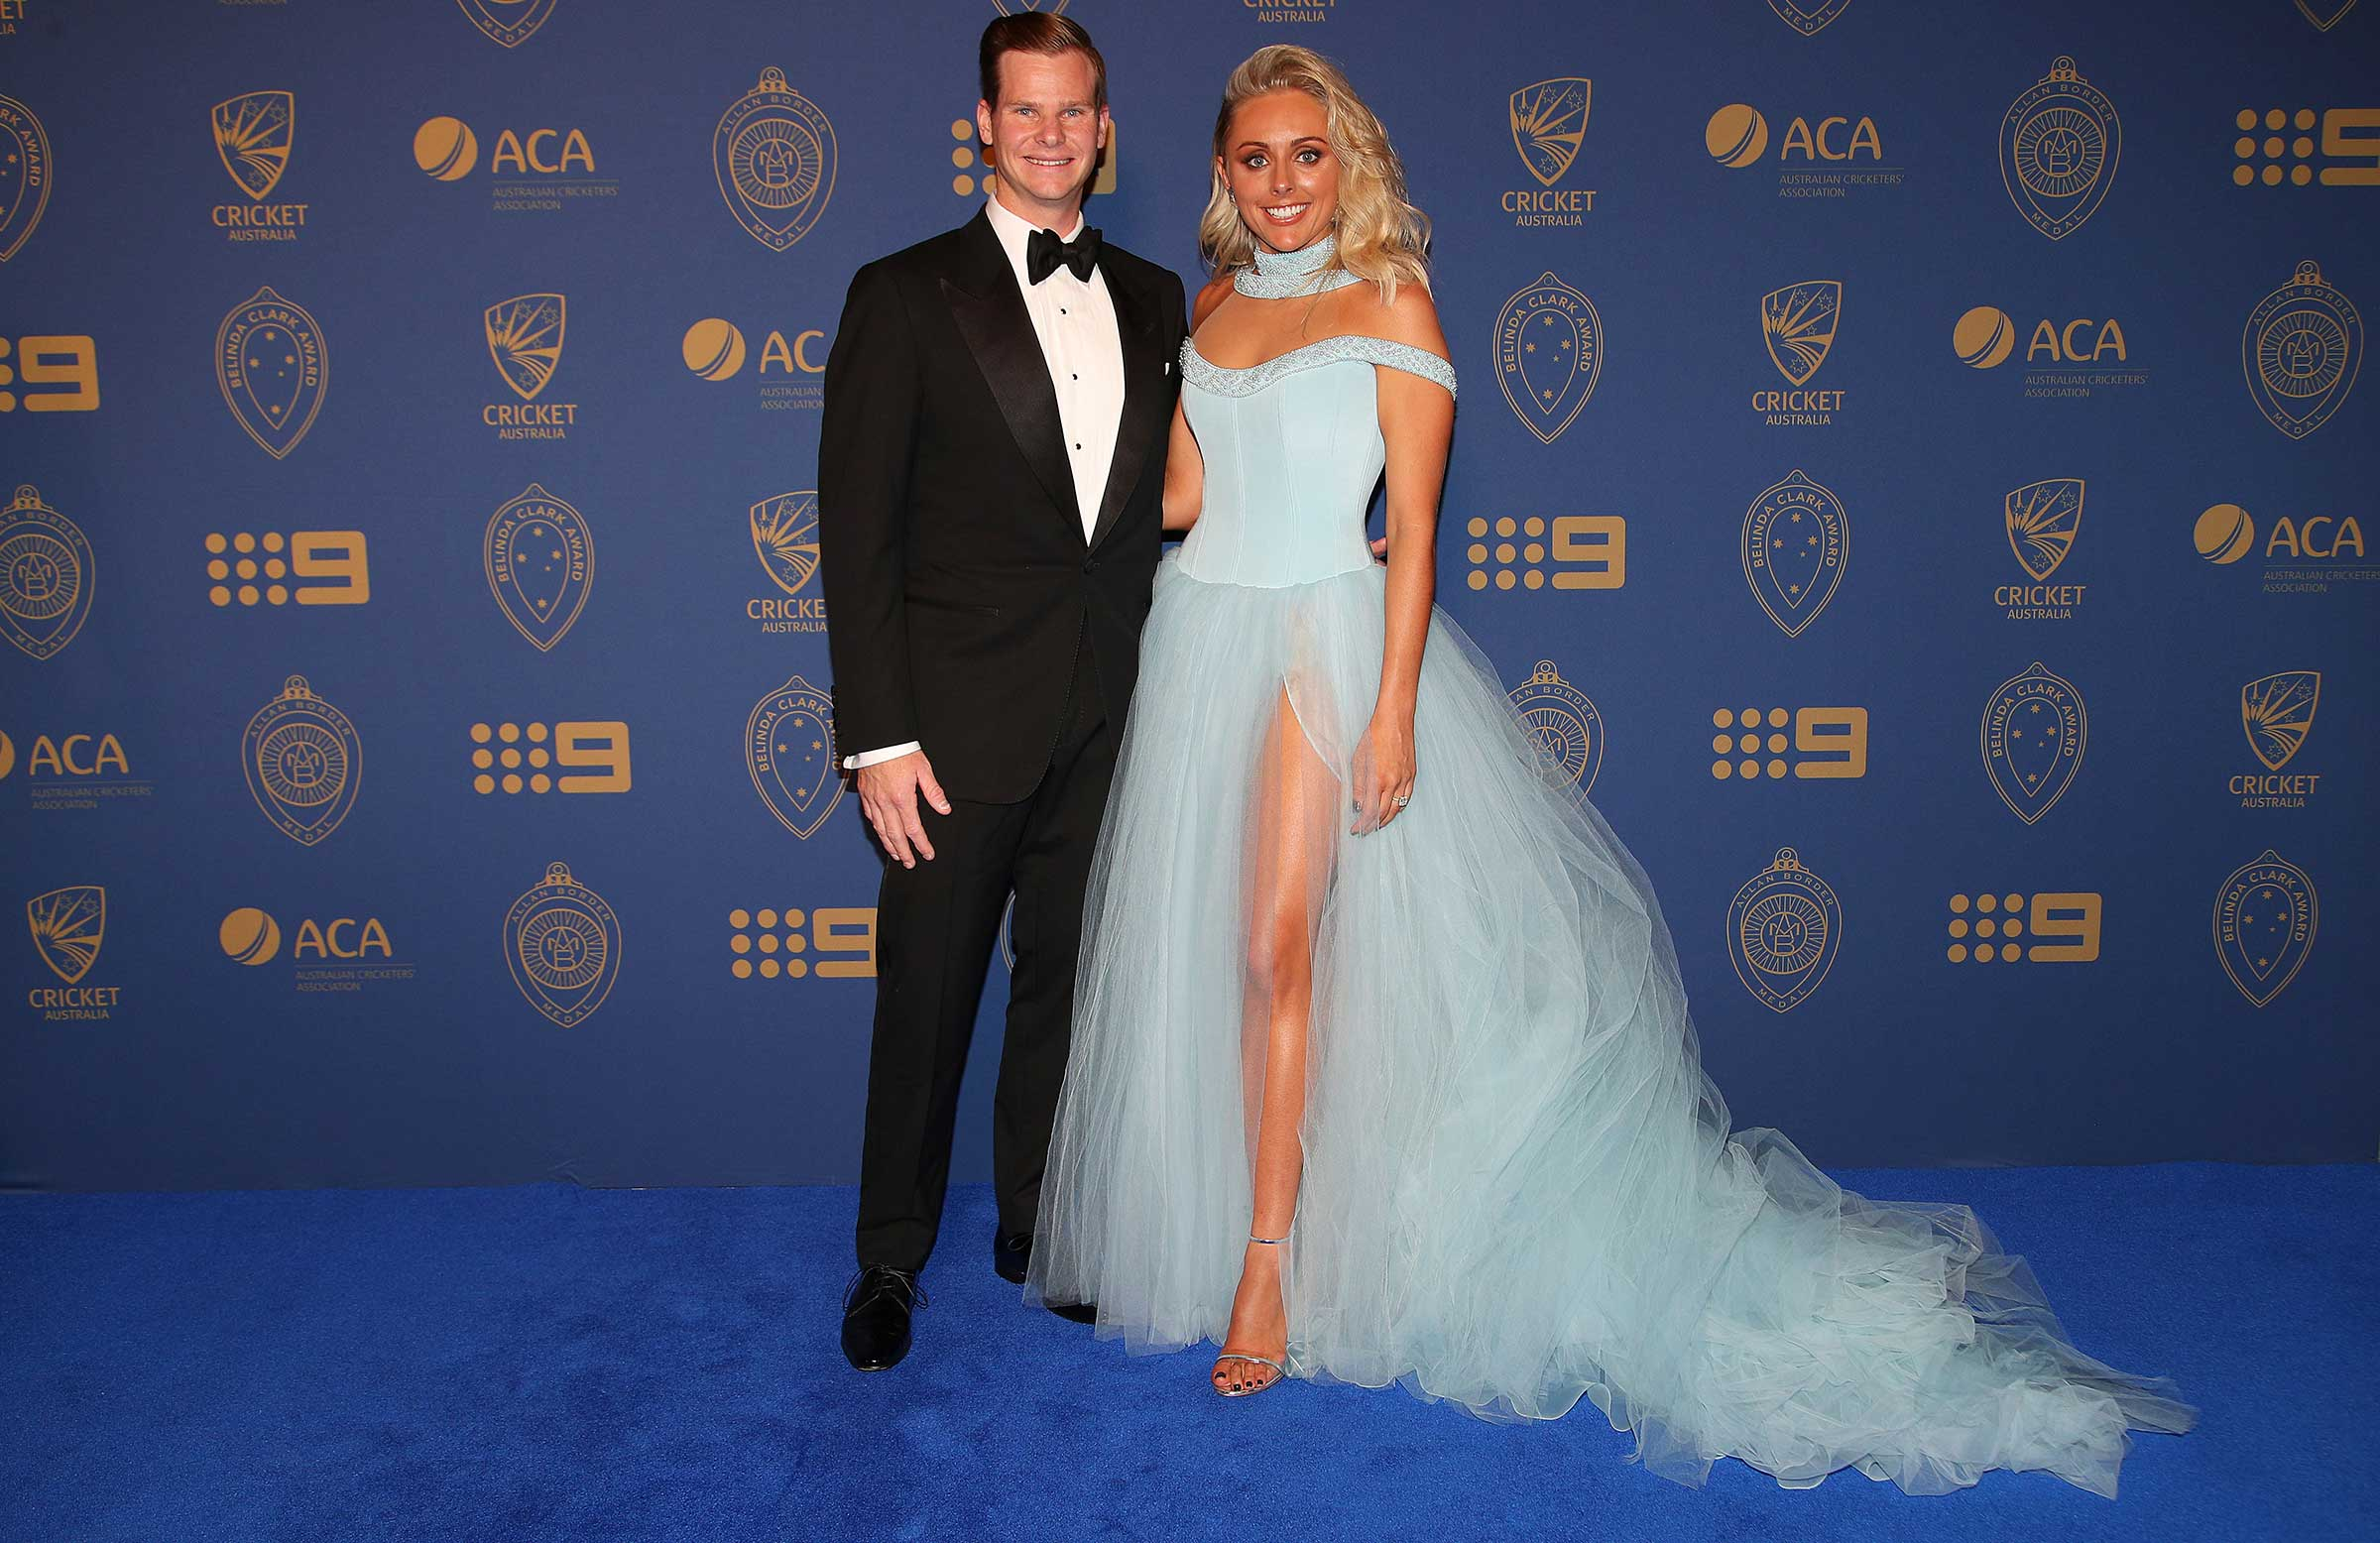 Australia captain Steve Smith with fiancée Dani Willis at Allan Border Medal night | Getty